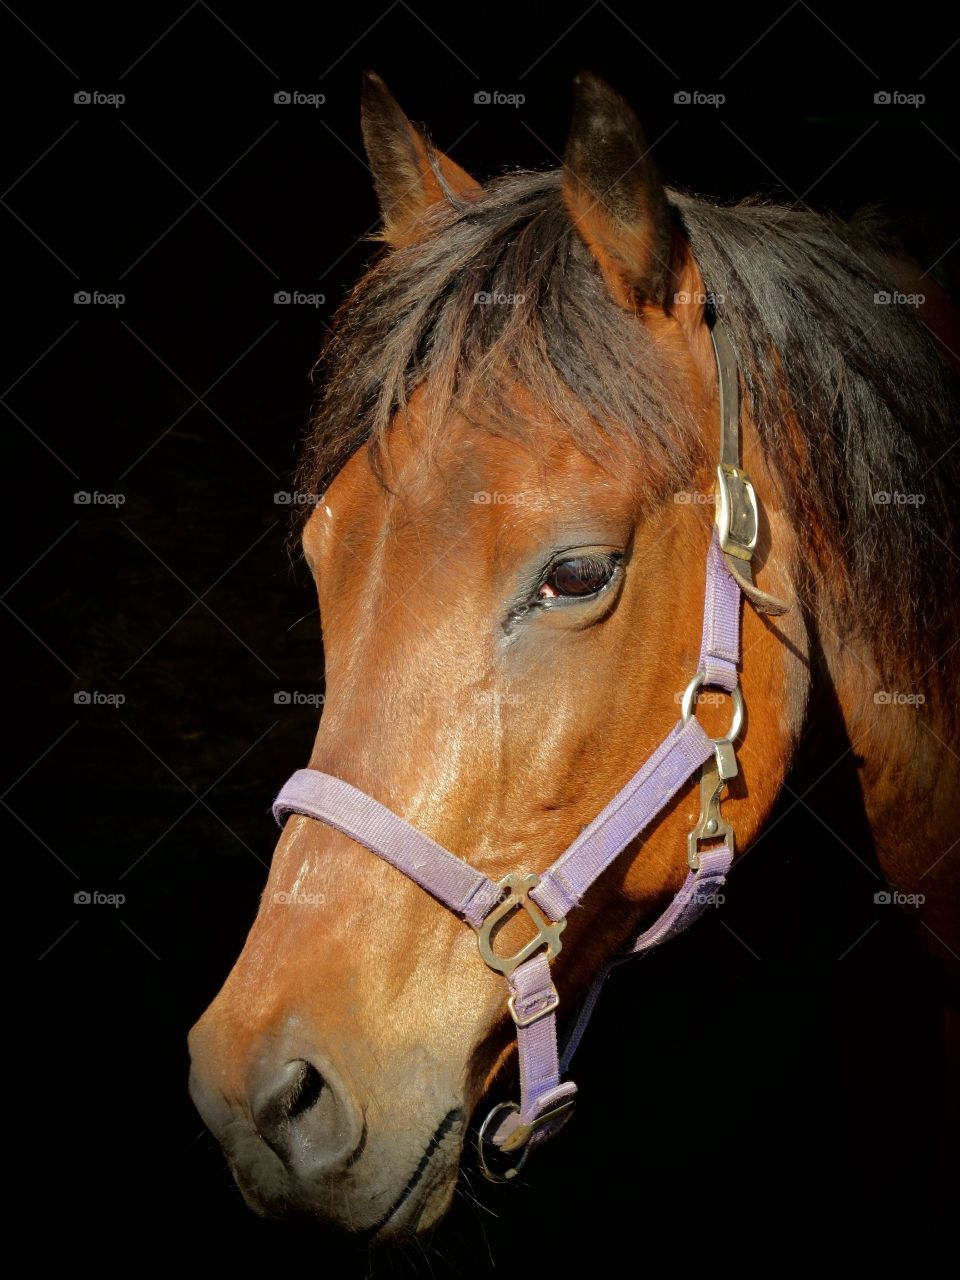 Portrait of a Bay mare in the stall with a black background and purple halter